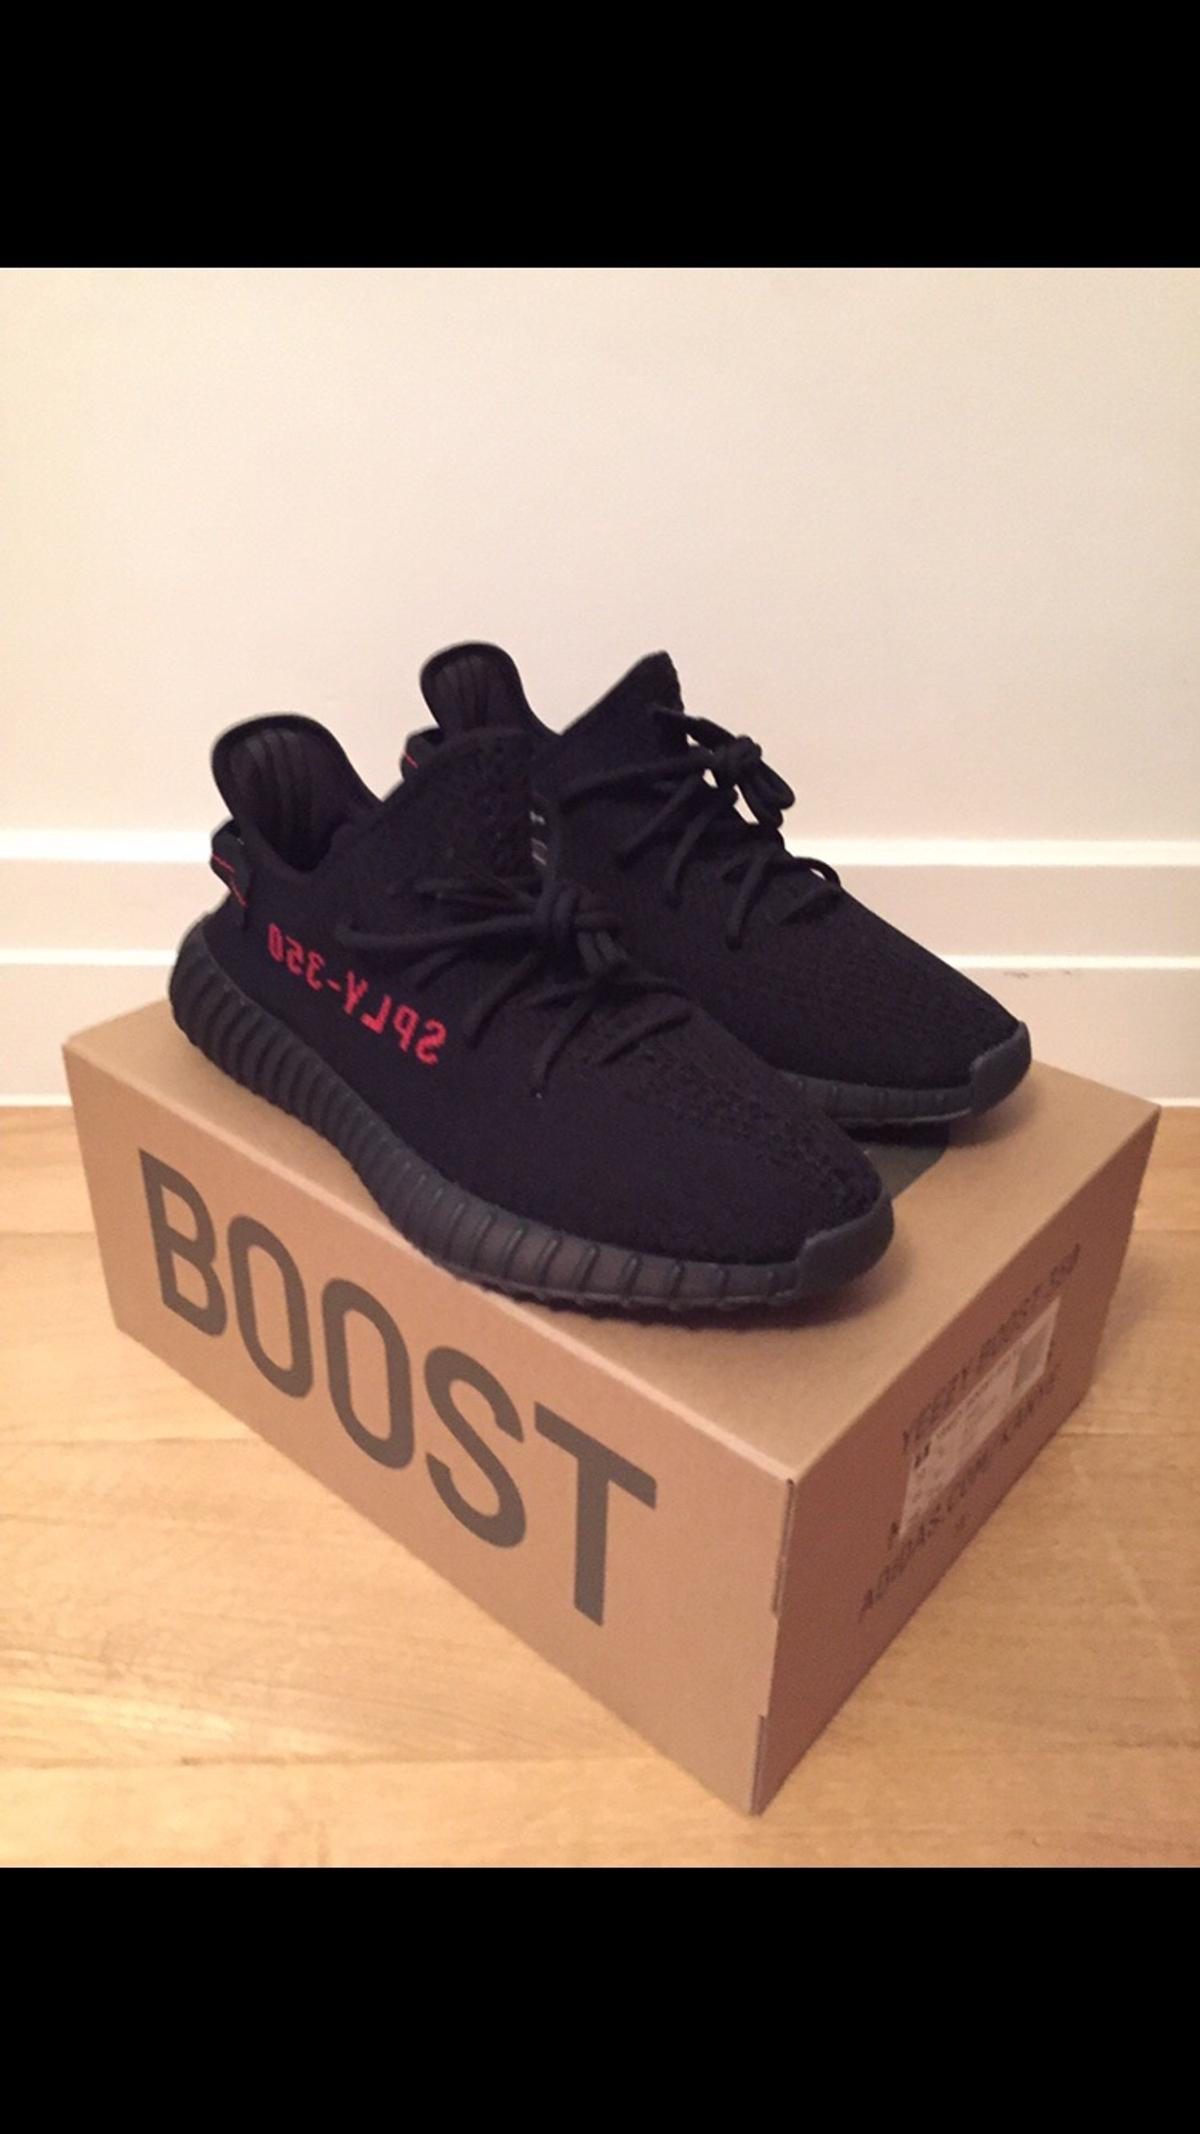 a328d6d317da7 Adidas Yeezy boost 350 bred in W9 London for £400.00 for sale - Shpock